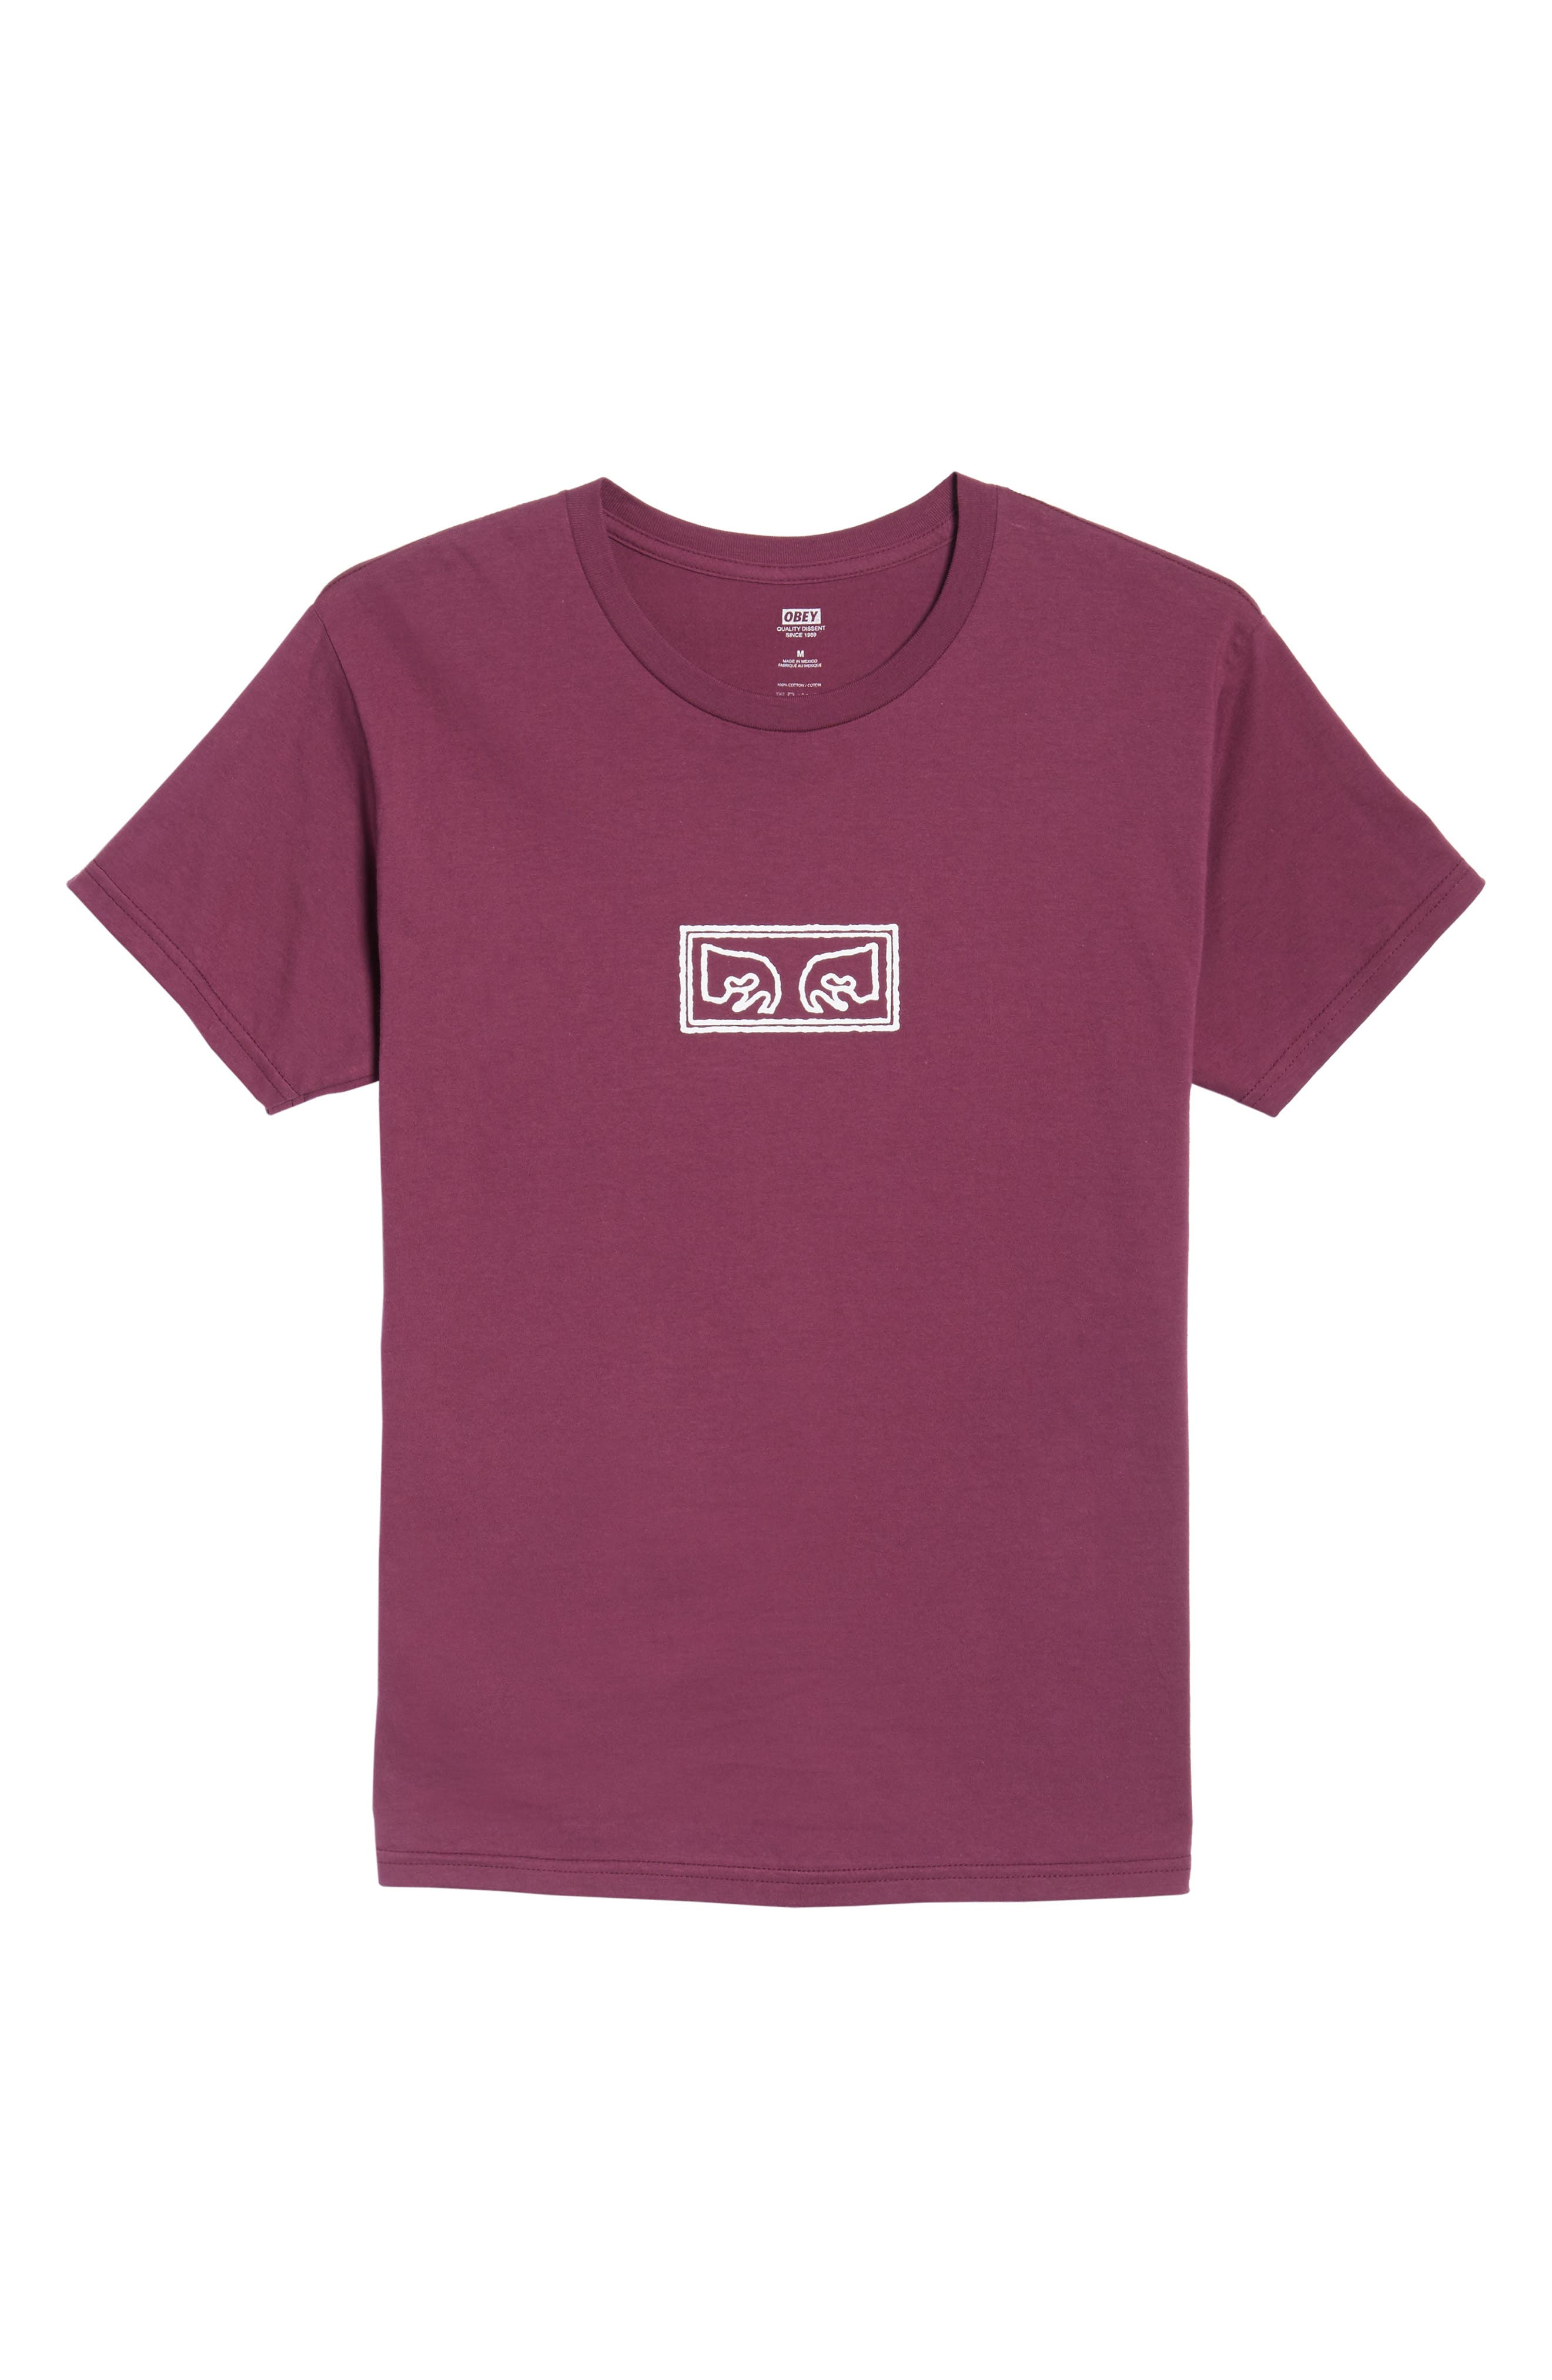 Eyes Graphic Premium T-Shirt,                             Alternate thumbnail 6, color,                             Raspberry